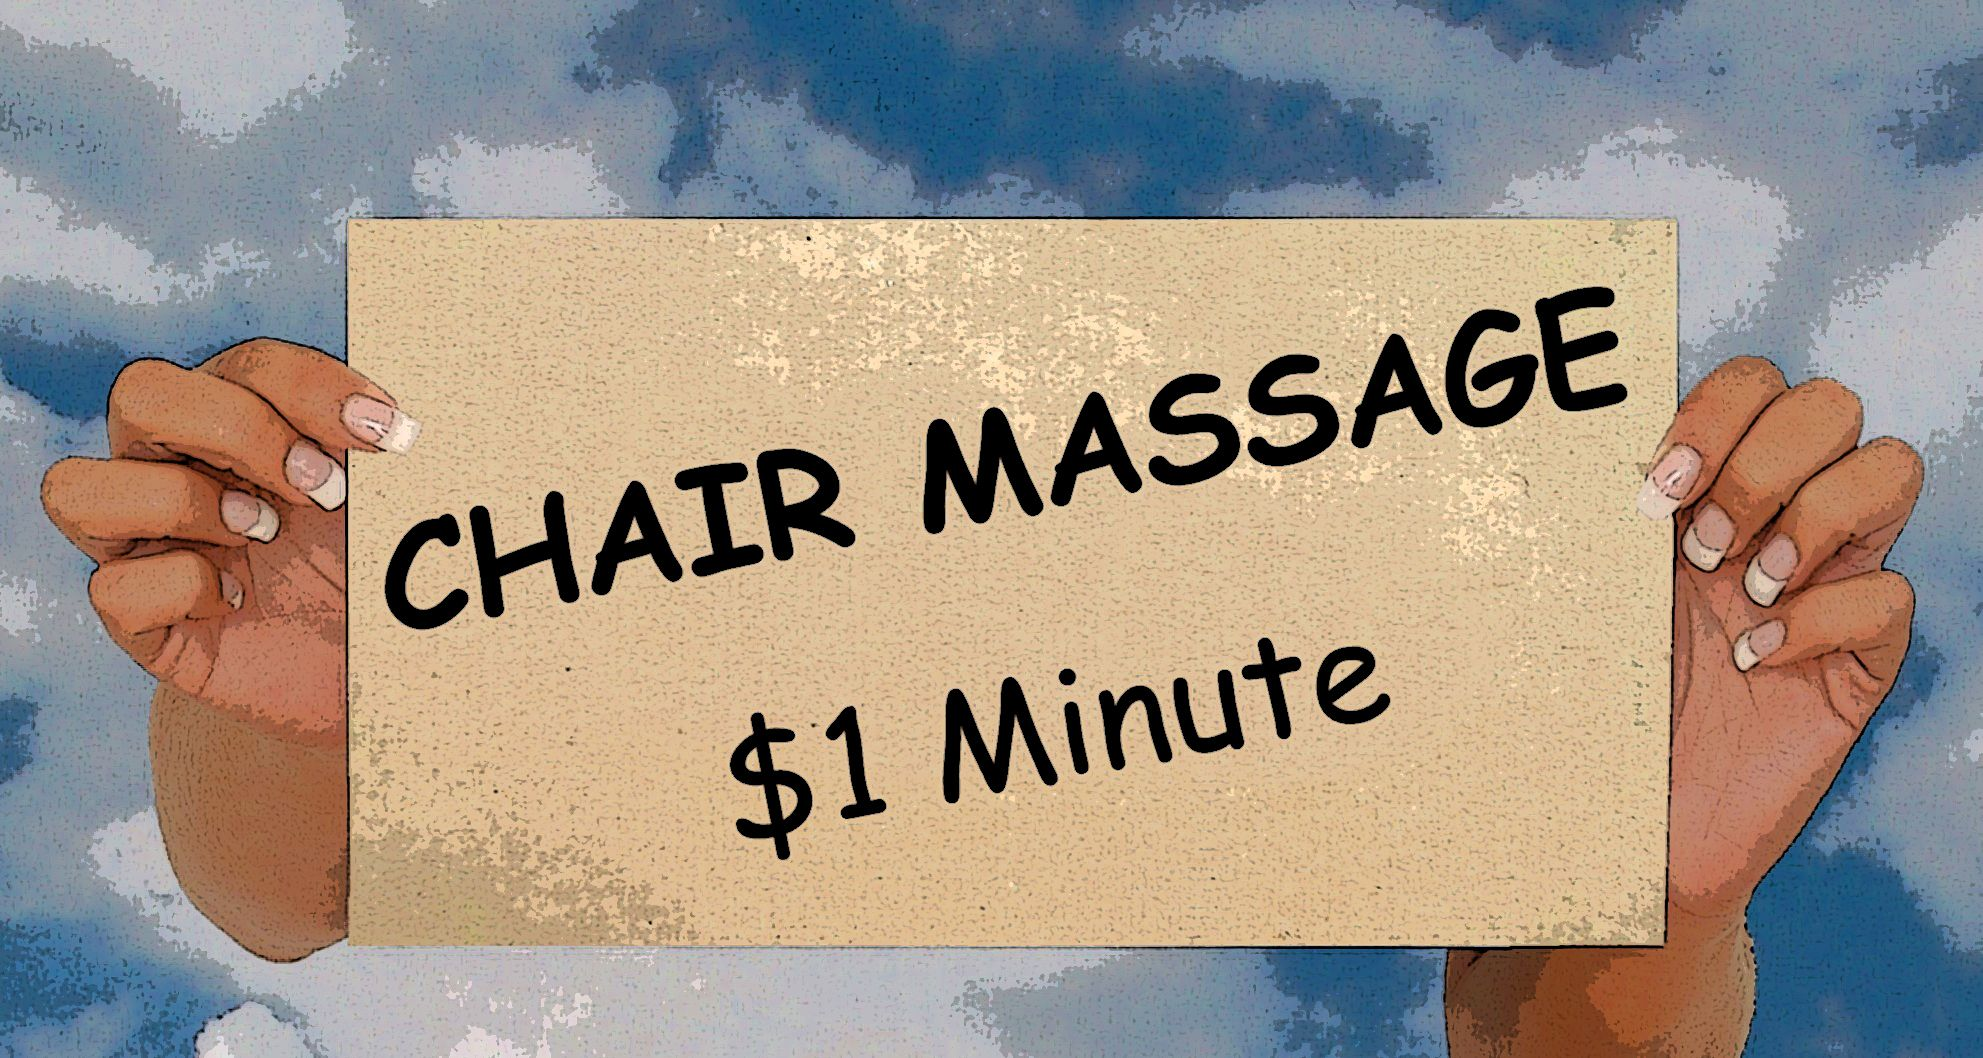 Chair Massage $1 Minute Massage Quotes and Signs